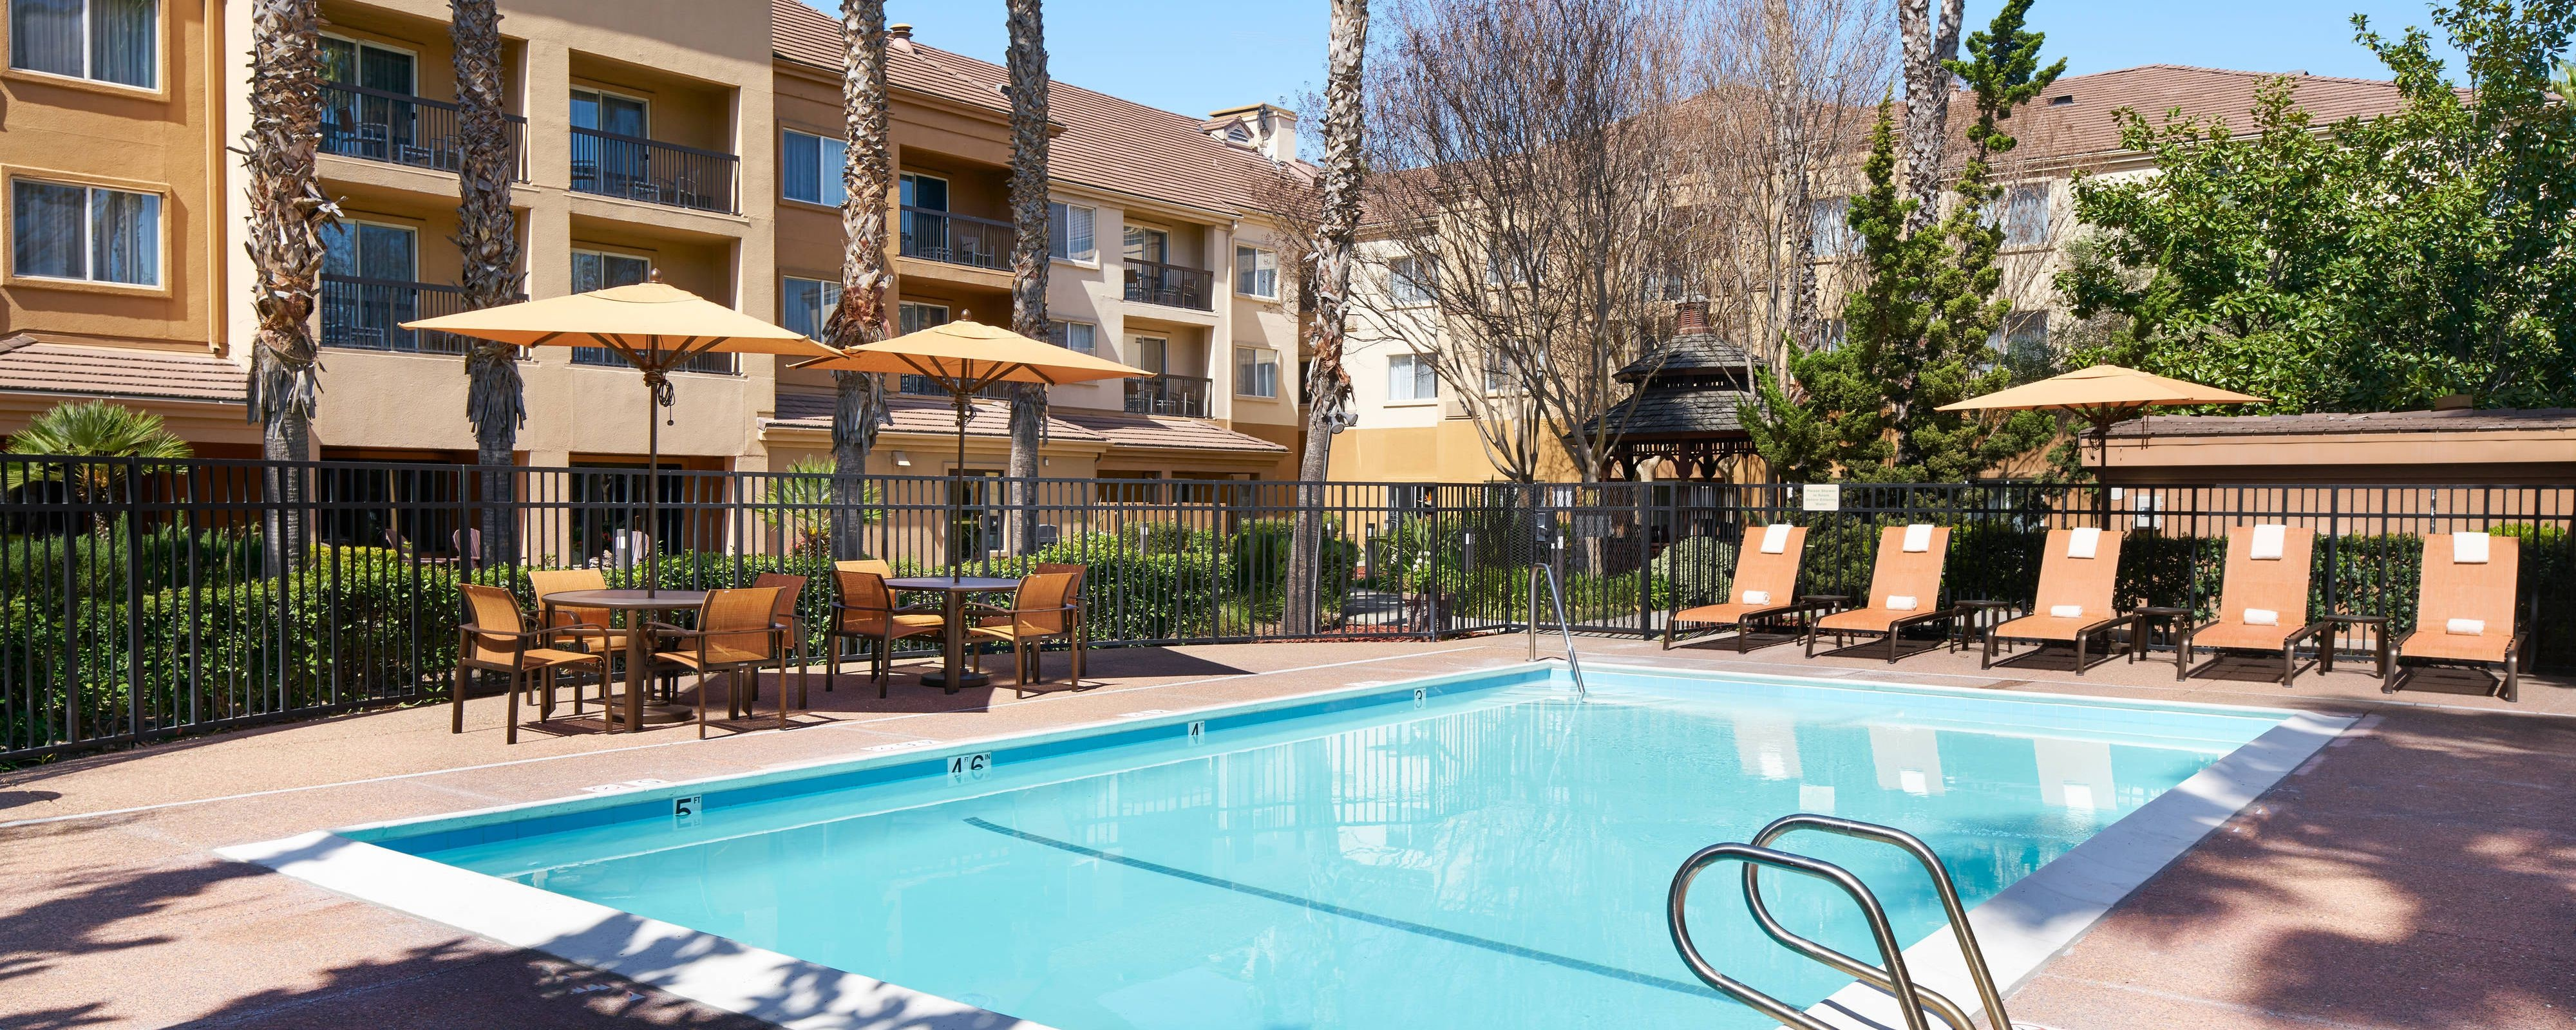 Milpitas Hotel With Outdoor Pool Courtyard Milpitas Silicon Valley